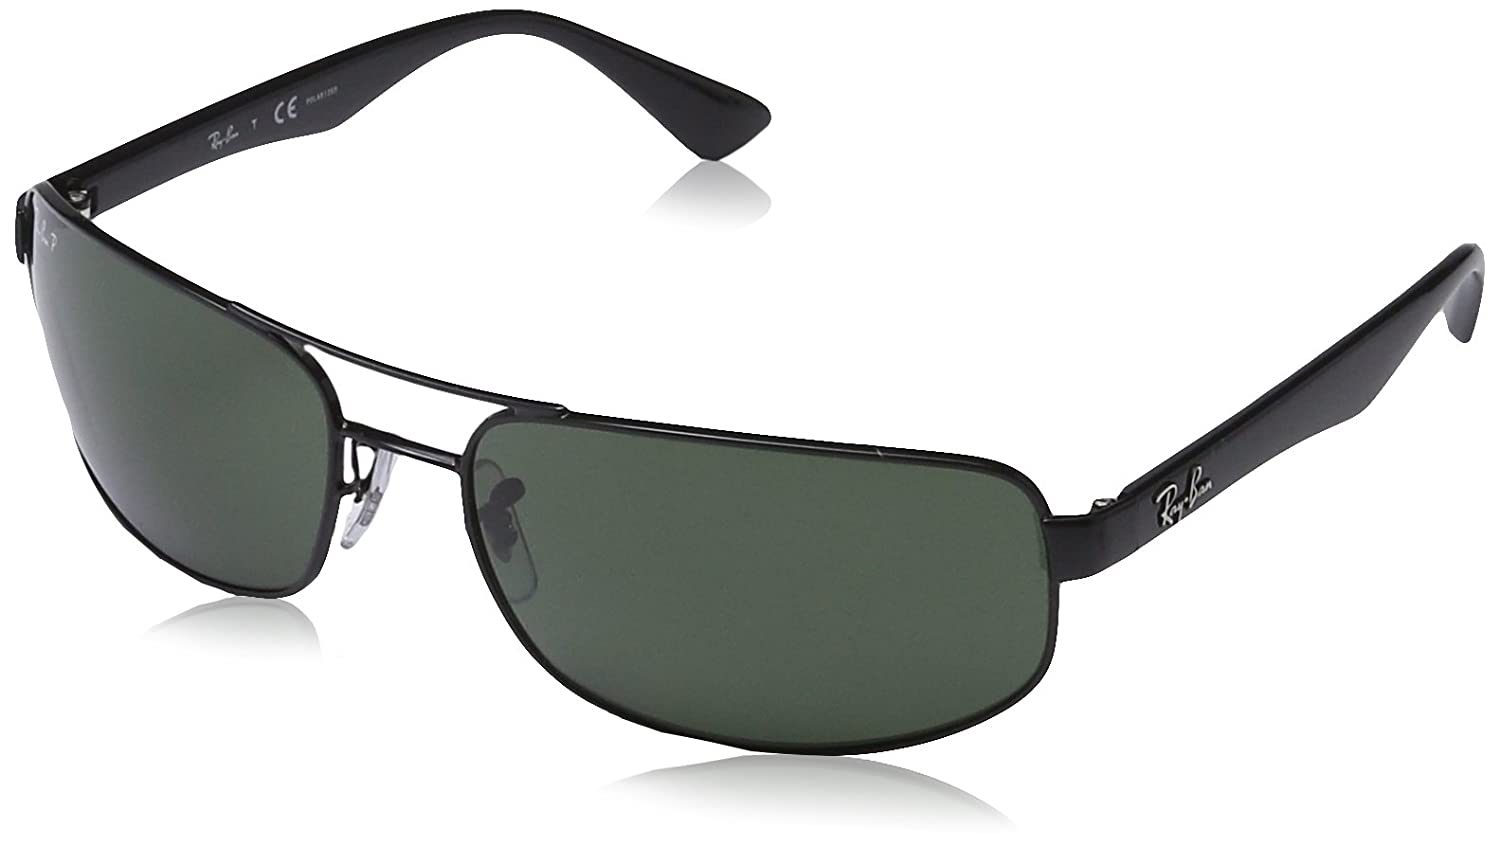 2ade2bfd38d Amazon.com  Ray-Ban Sunglasses (RB 3445)  Clothing